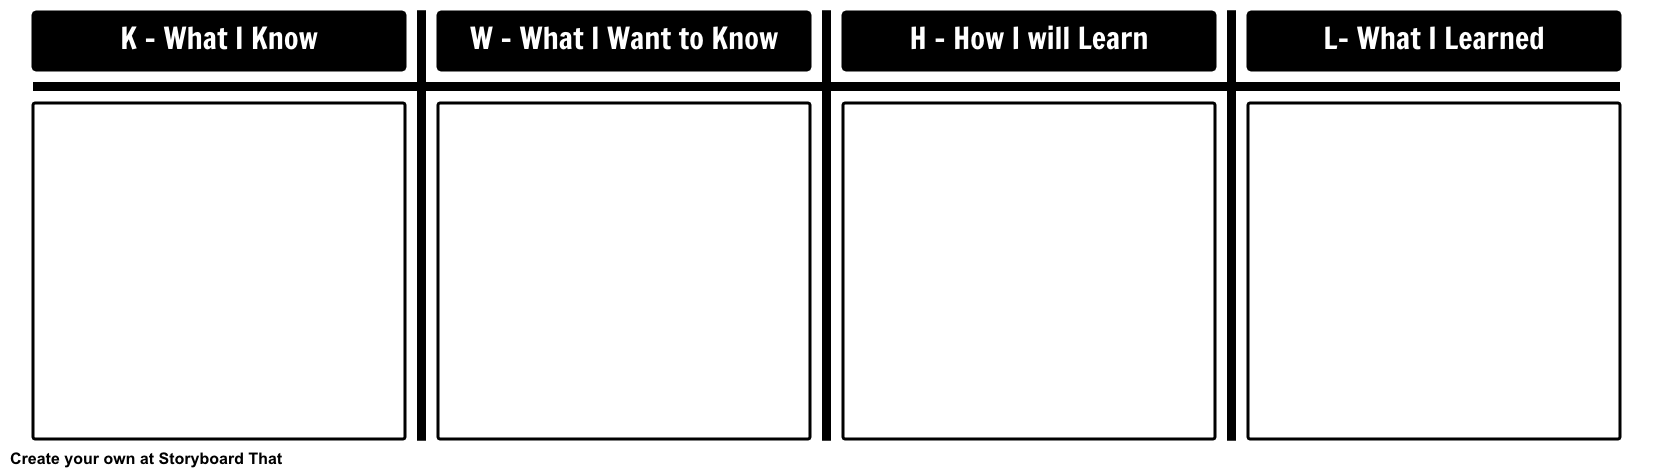 photo regarding Printable Kwl Charts identified as KWL Chart Template Picture Organizer Templates KWHL Chart